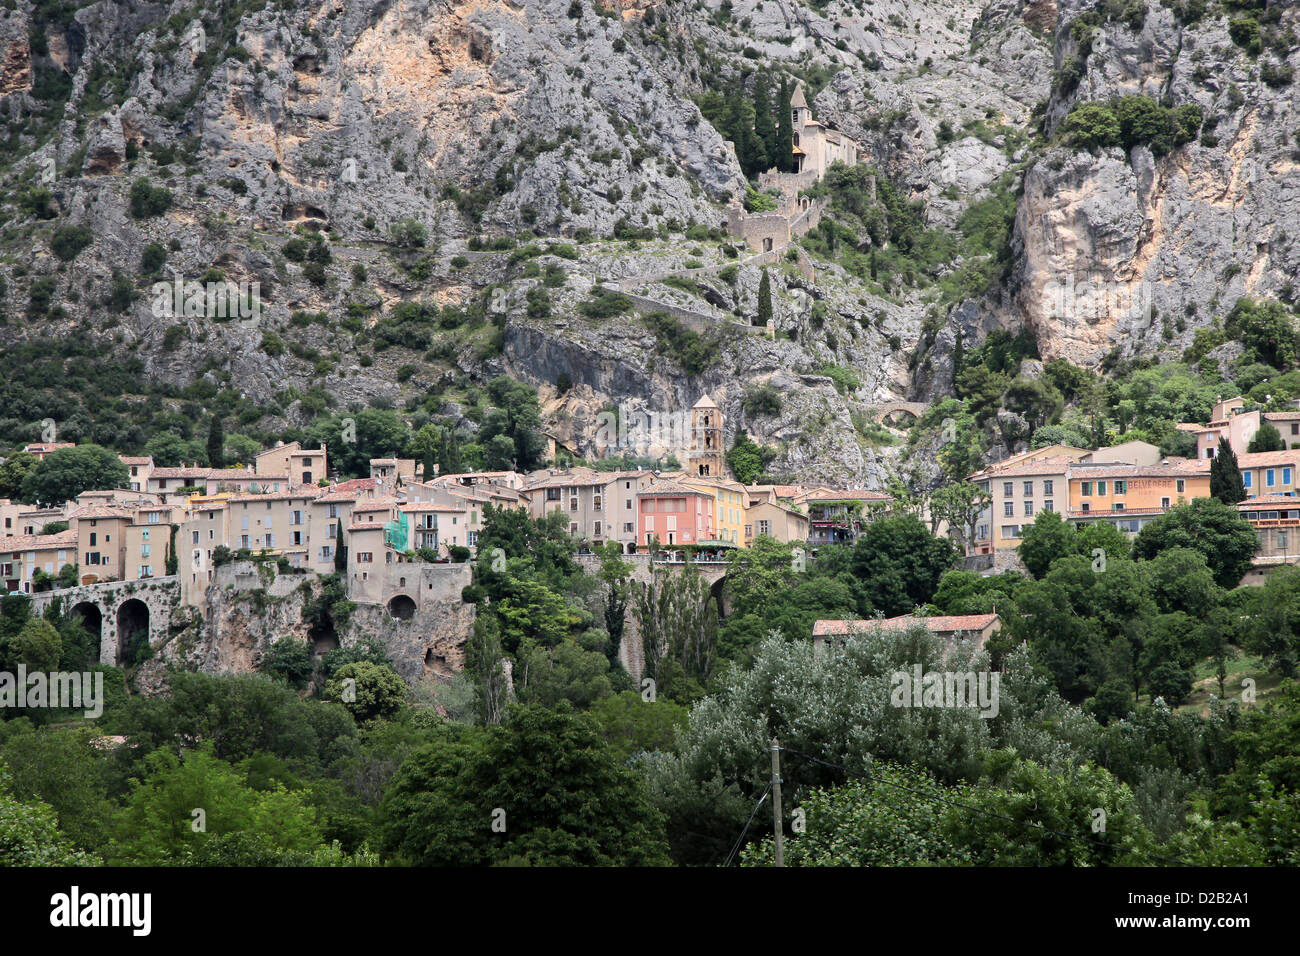 The village of Moustiers-Sainte-Marie in Haute-Provence, France Stock Photo